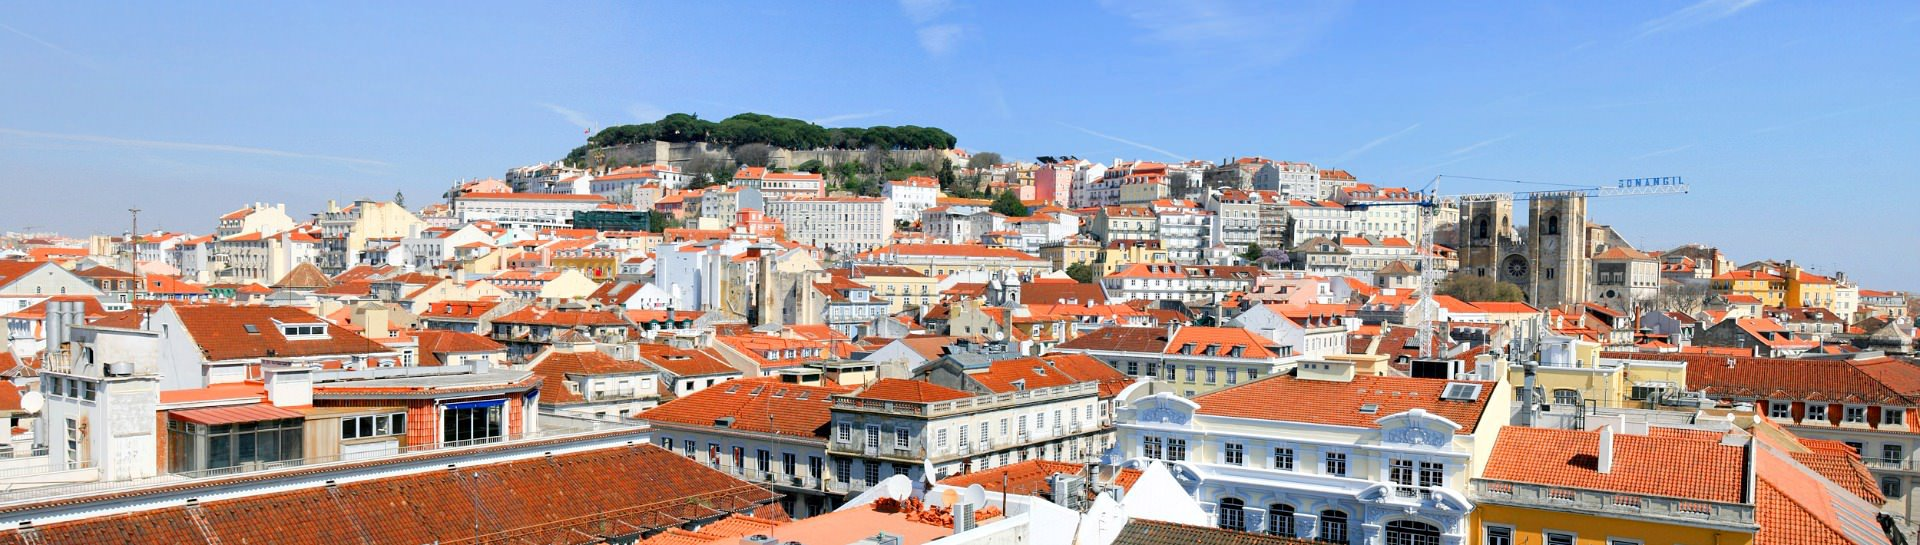 private tour to portugal highlights. Black Bedroom Furniture Sets. Home Design Ideas